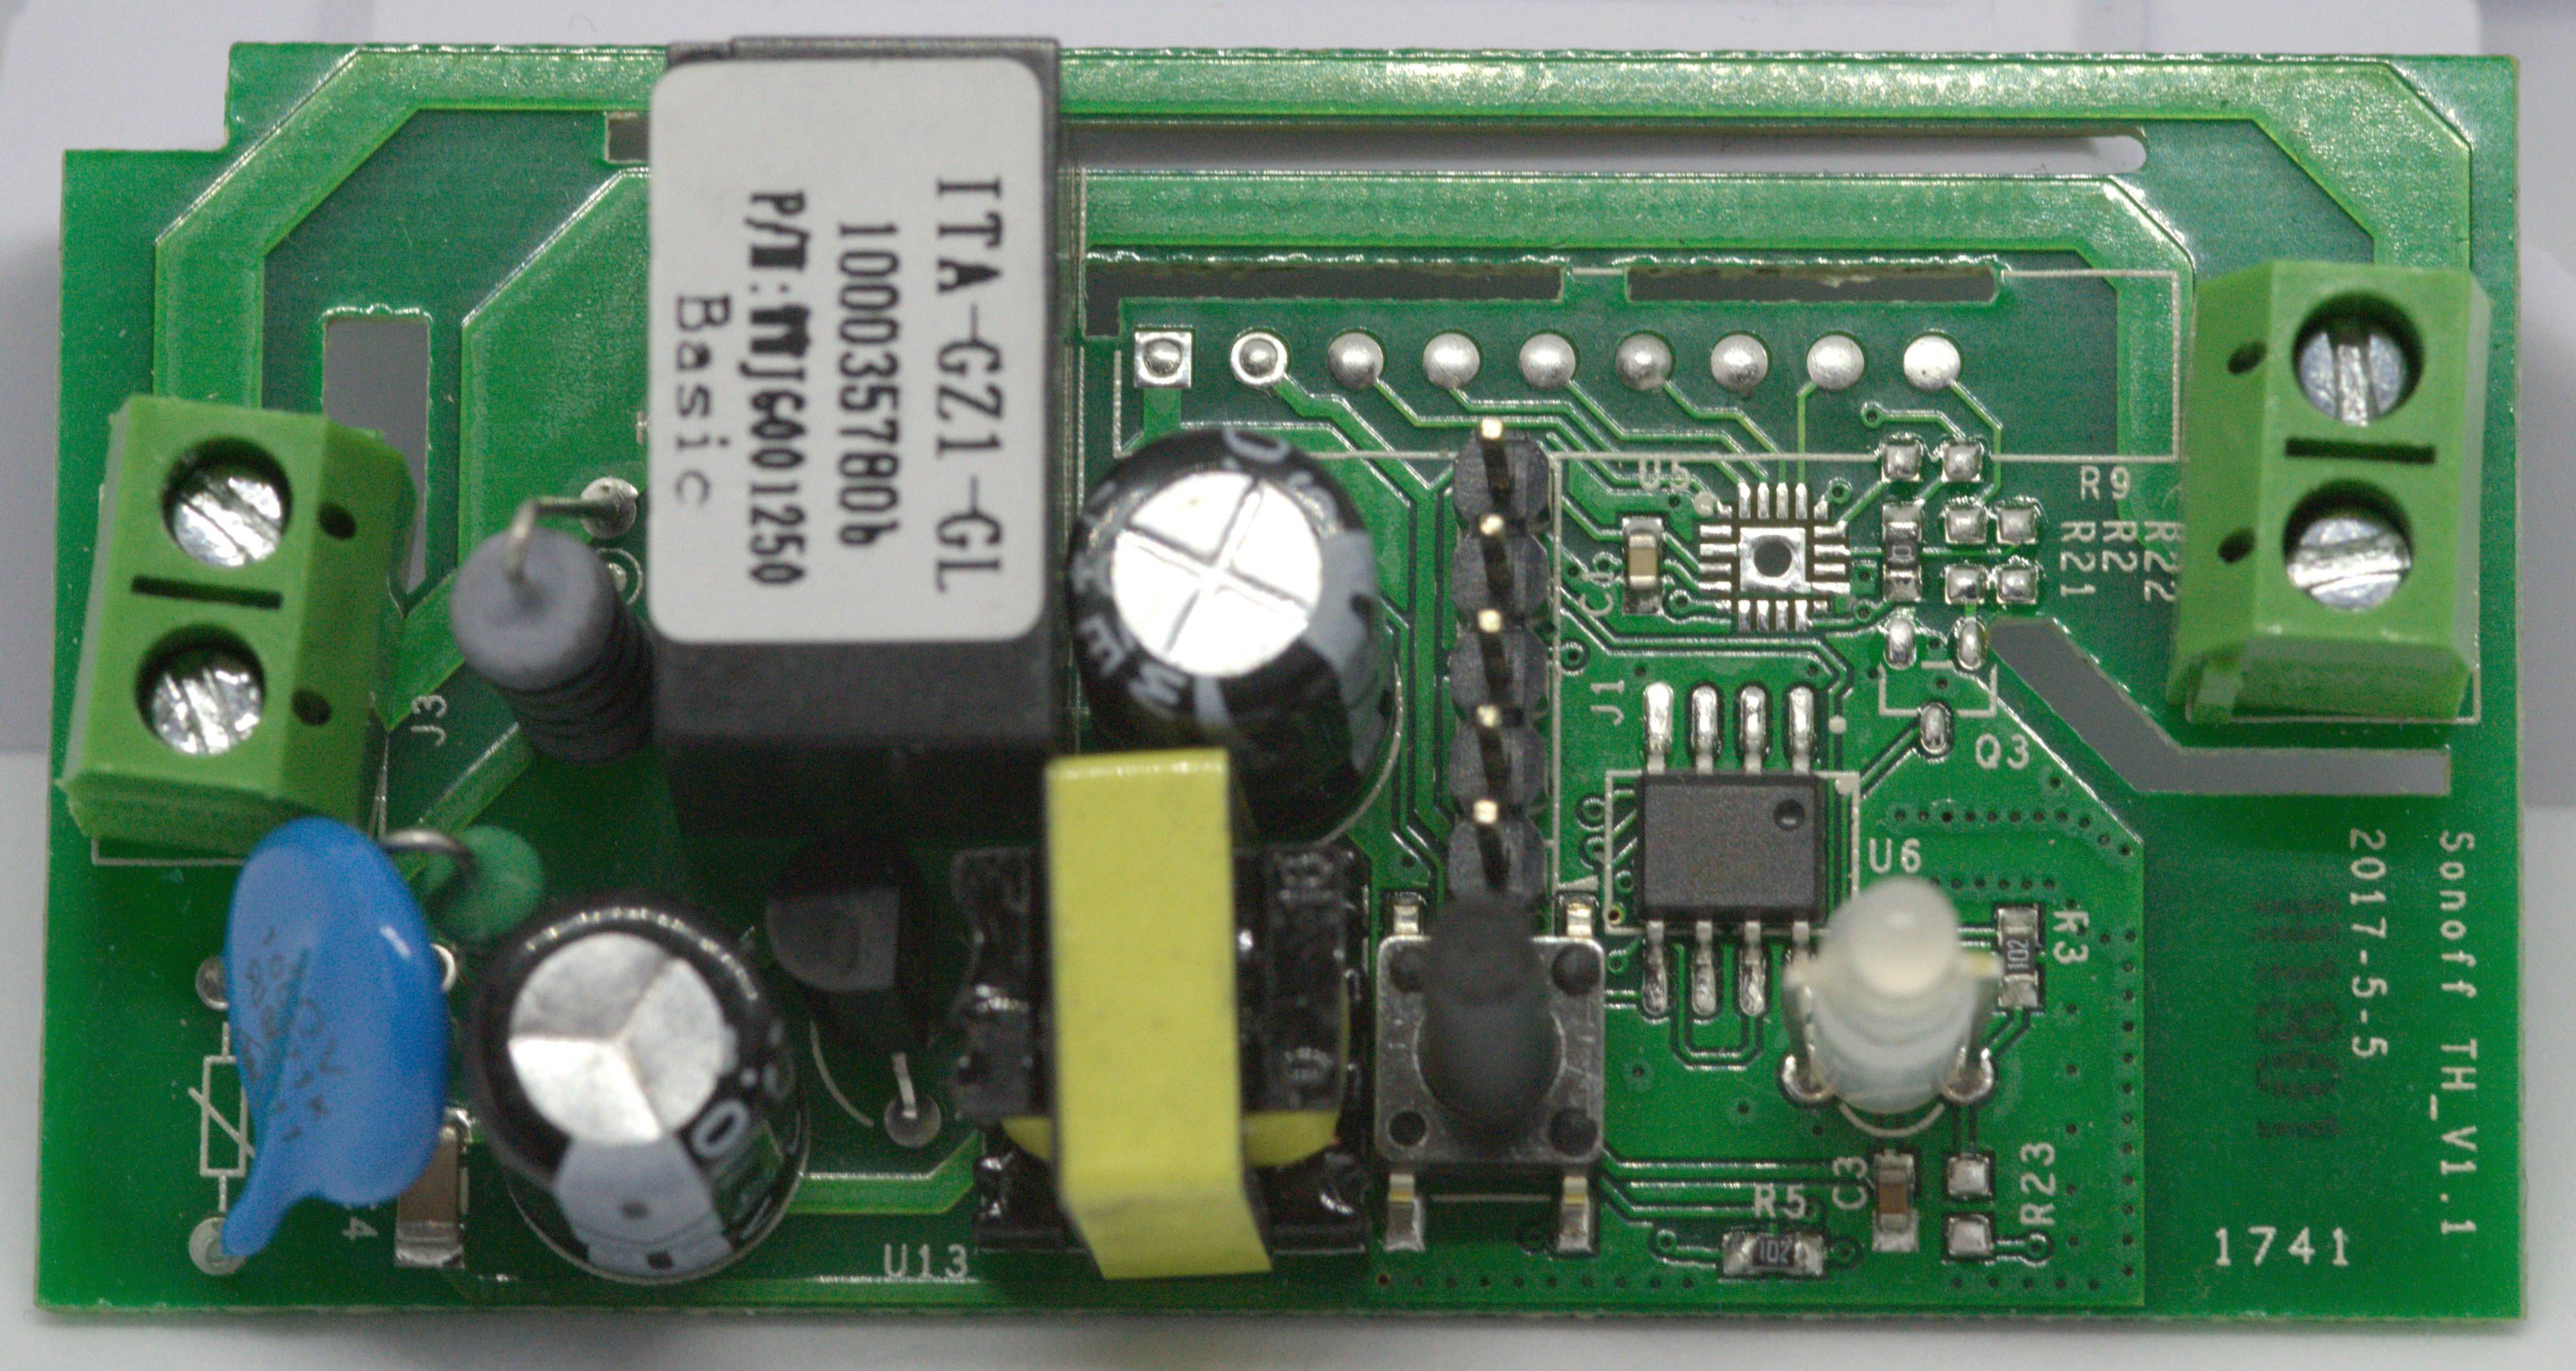 Developers Latest Version Of Sonoff Basic Does Not Enter Flash Mode Sketches To Arduino Uno Chip Using Pl2303 Usb Rs232 Converter M 20180313 143010 91 143117 93